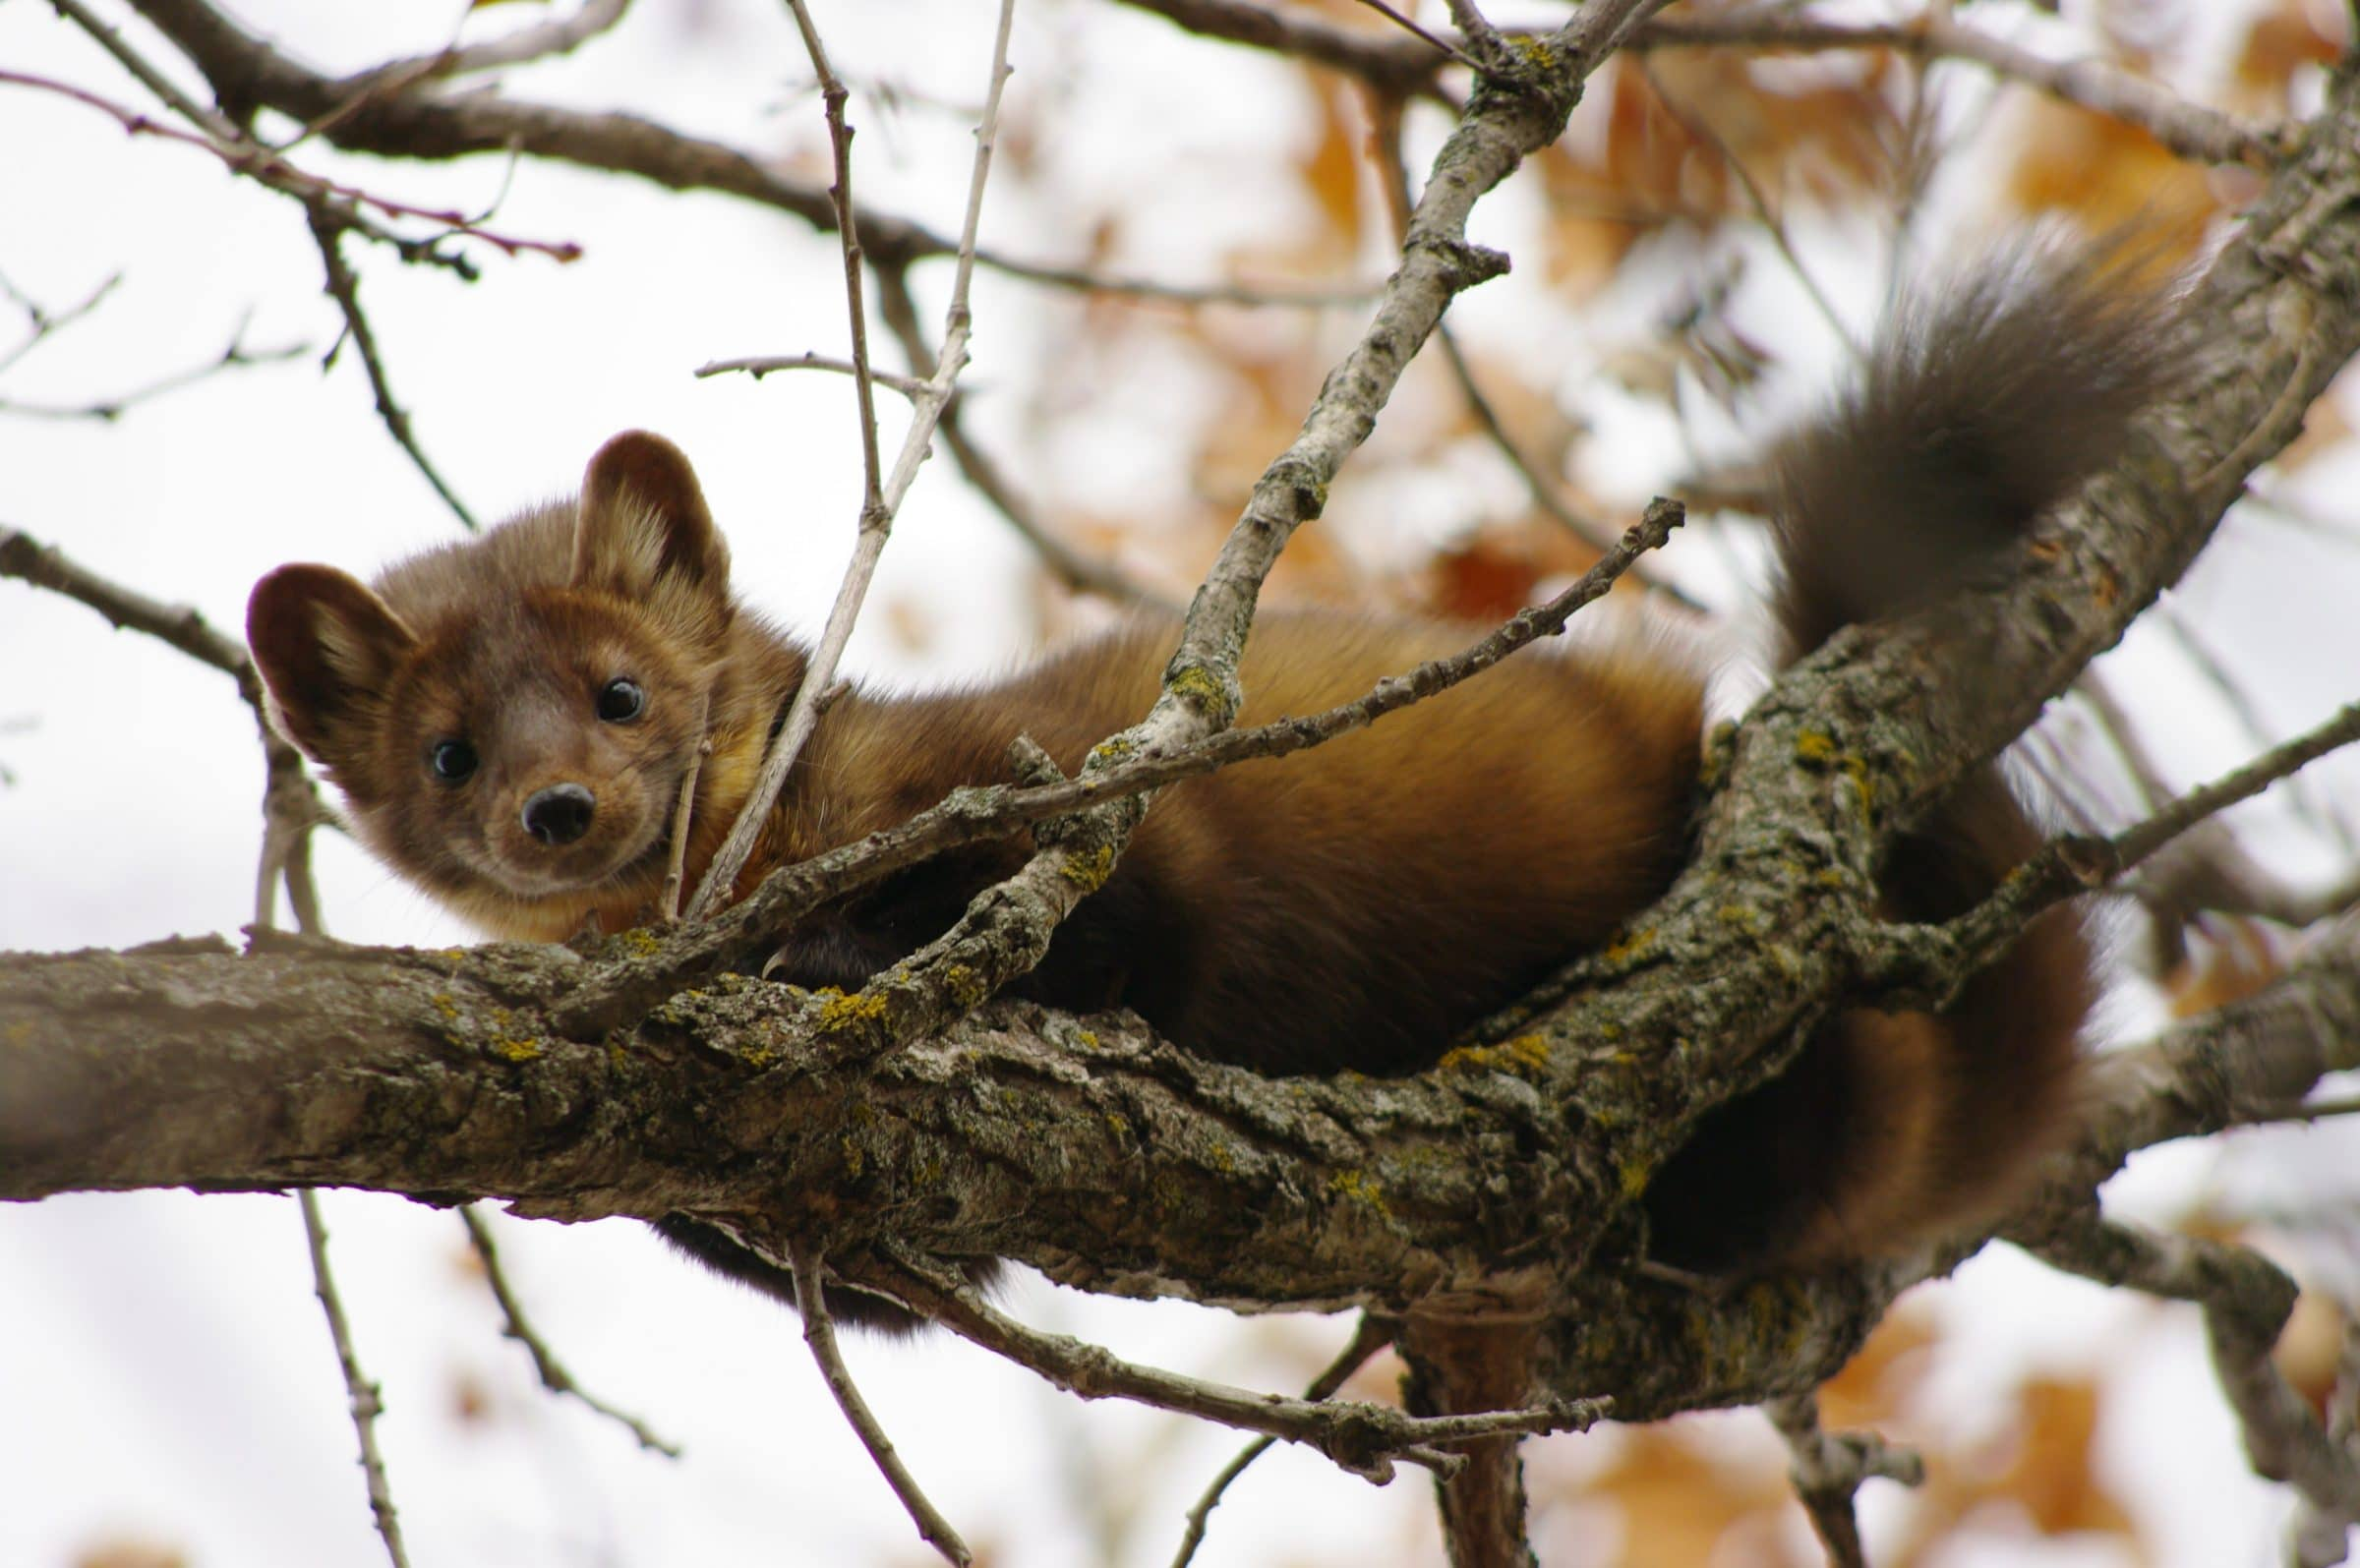 A marten lays on a tree branch and looks down below at the camera.